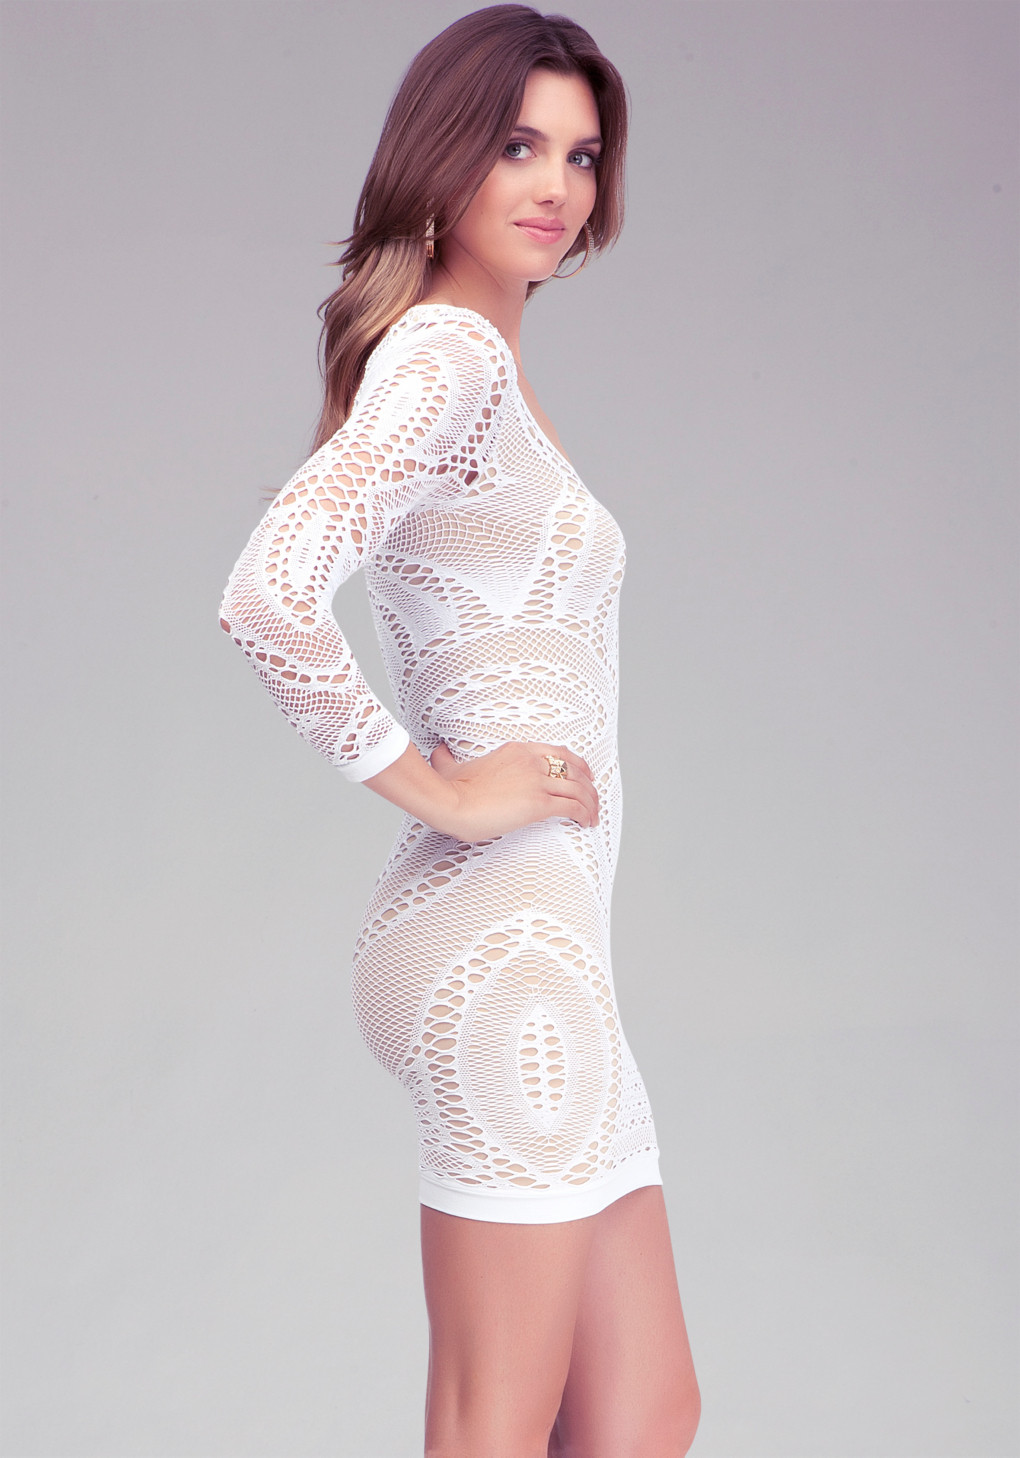 White Lace Crochet Dress Inspirational Bebe Crochet Lace Bodycon Dress In White Of Awesome 48 Photos White Lace Crochet Dress